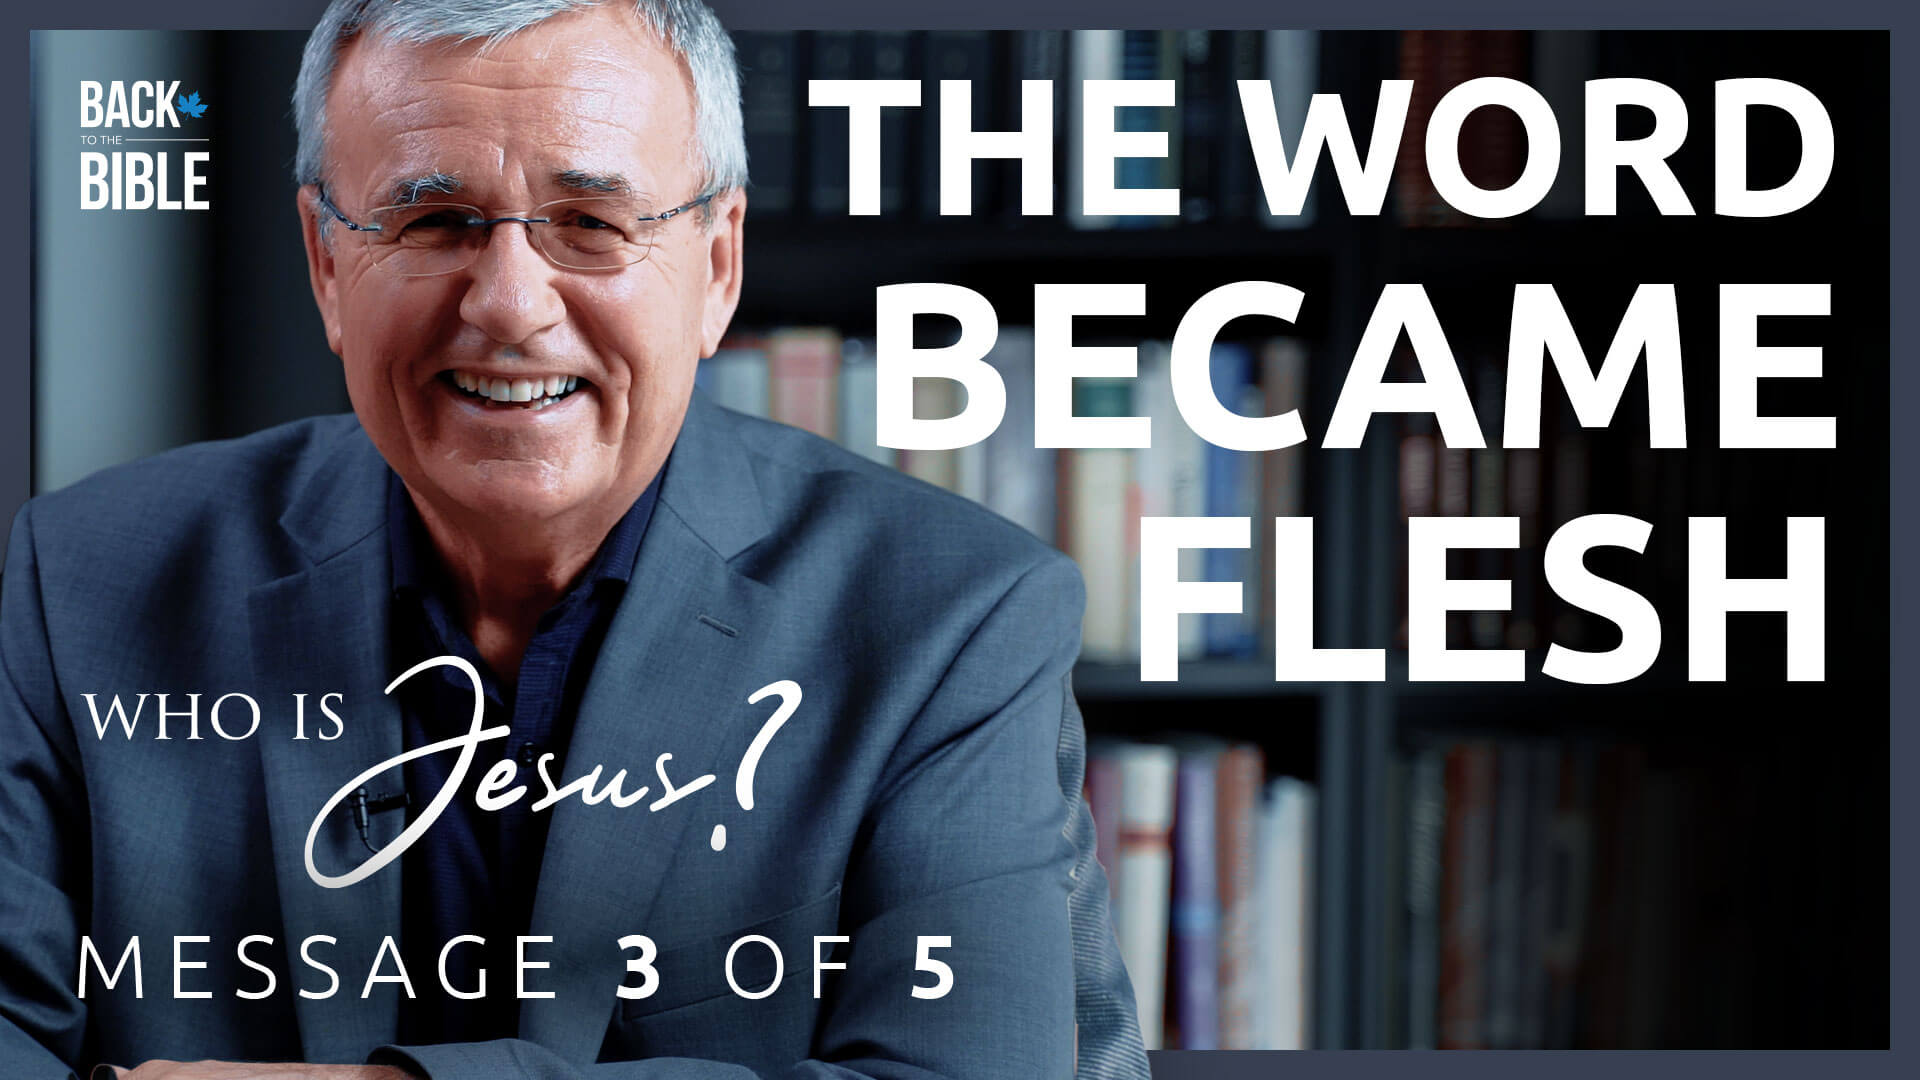 The Word Became Flesh - Who is Jesus? - Dr. John Neufeld - Back to the Bible Canada